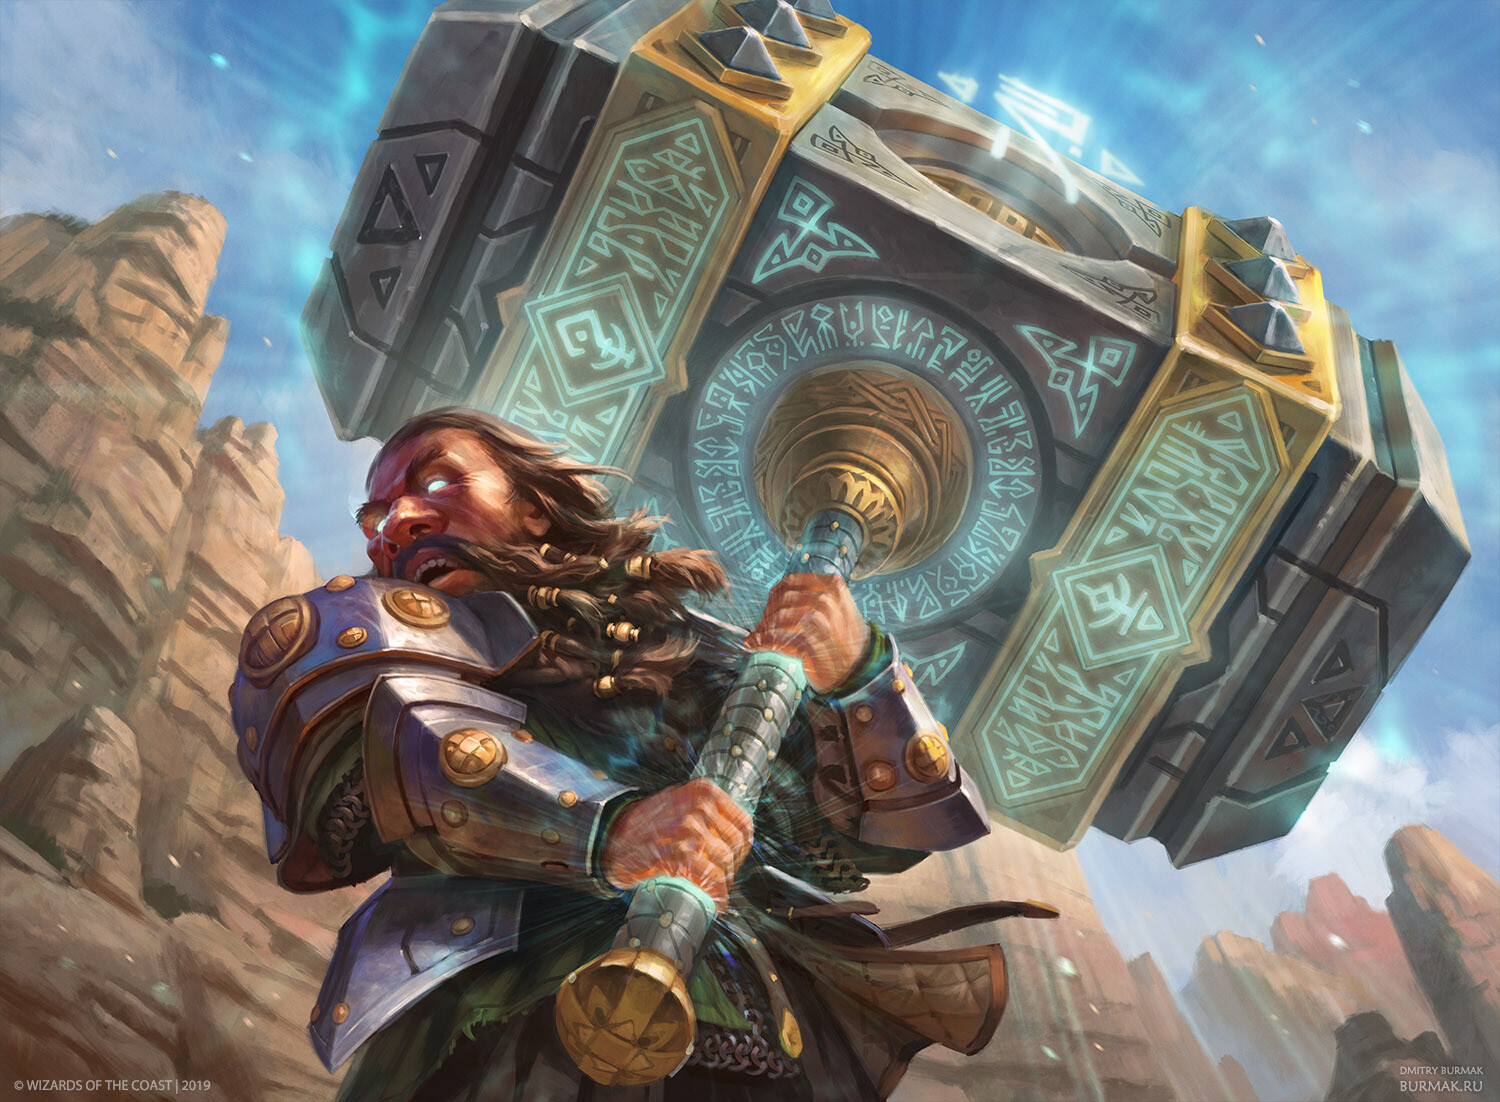 Dominaria's Judgment: It's Hammer Time!